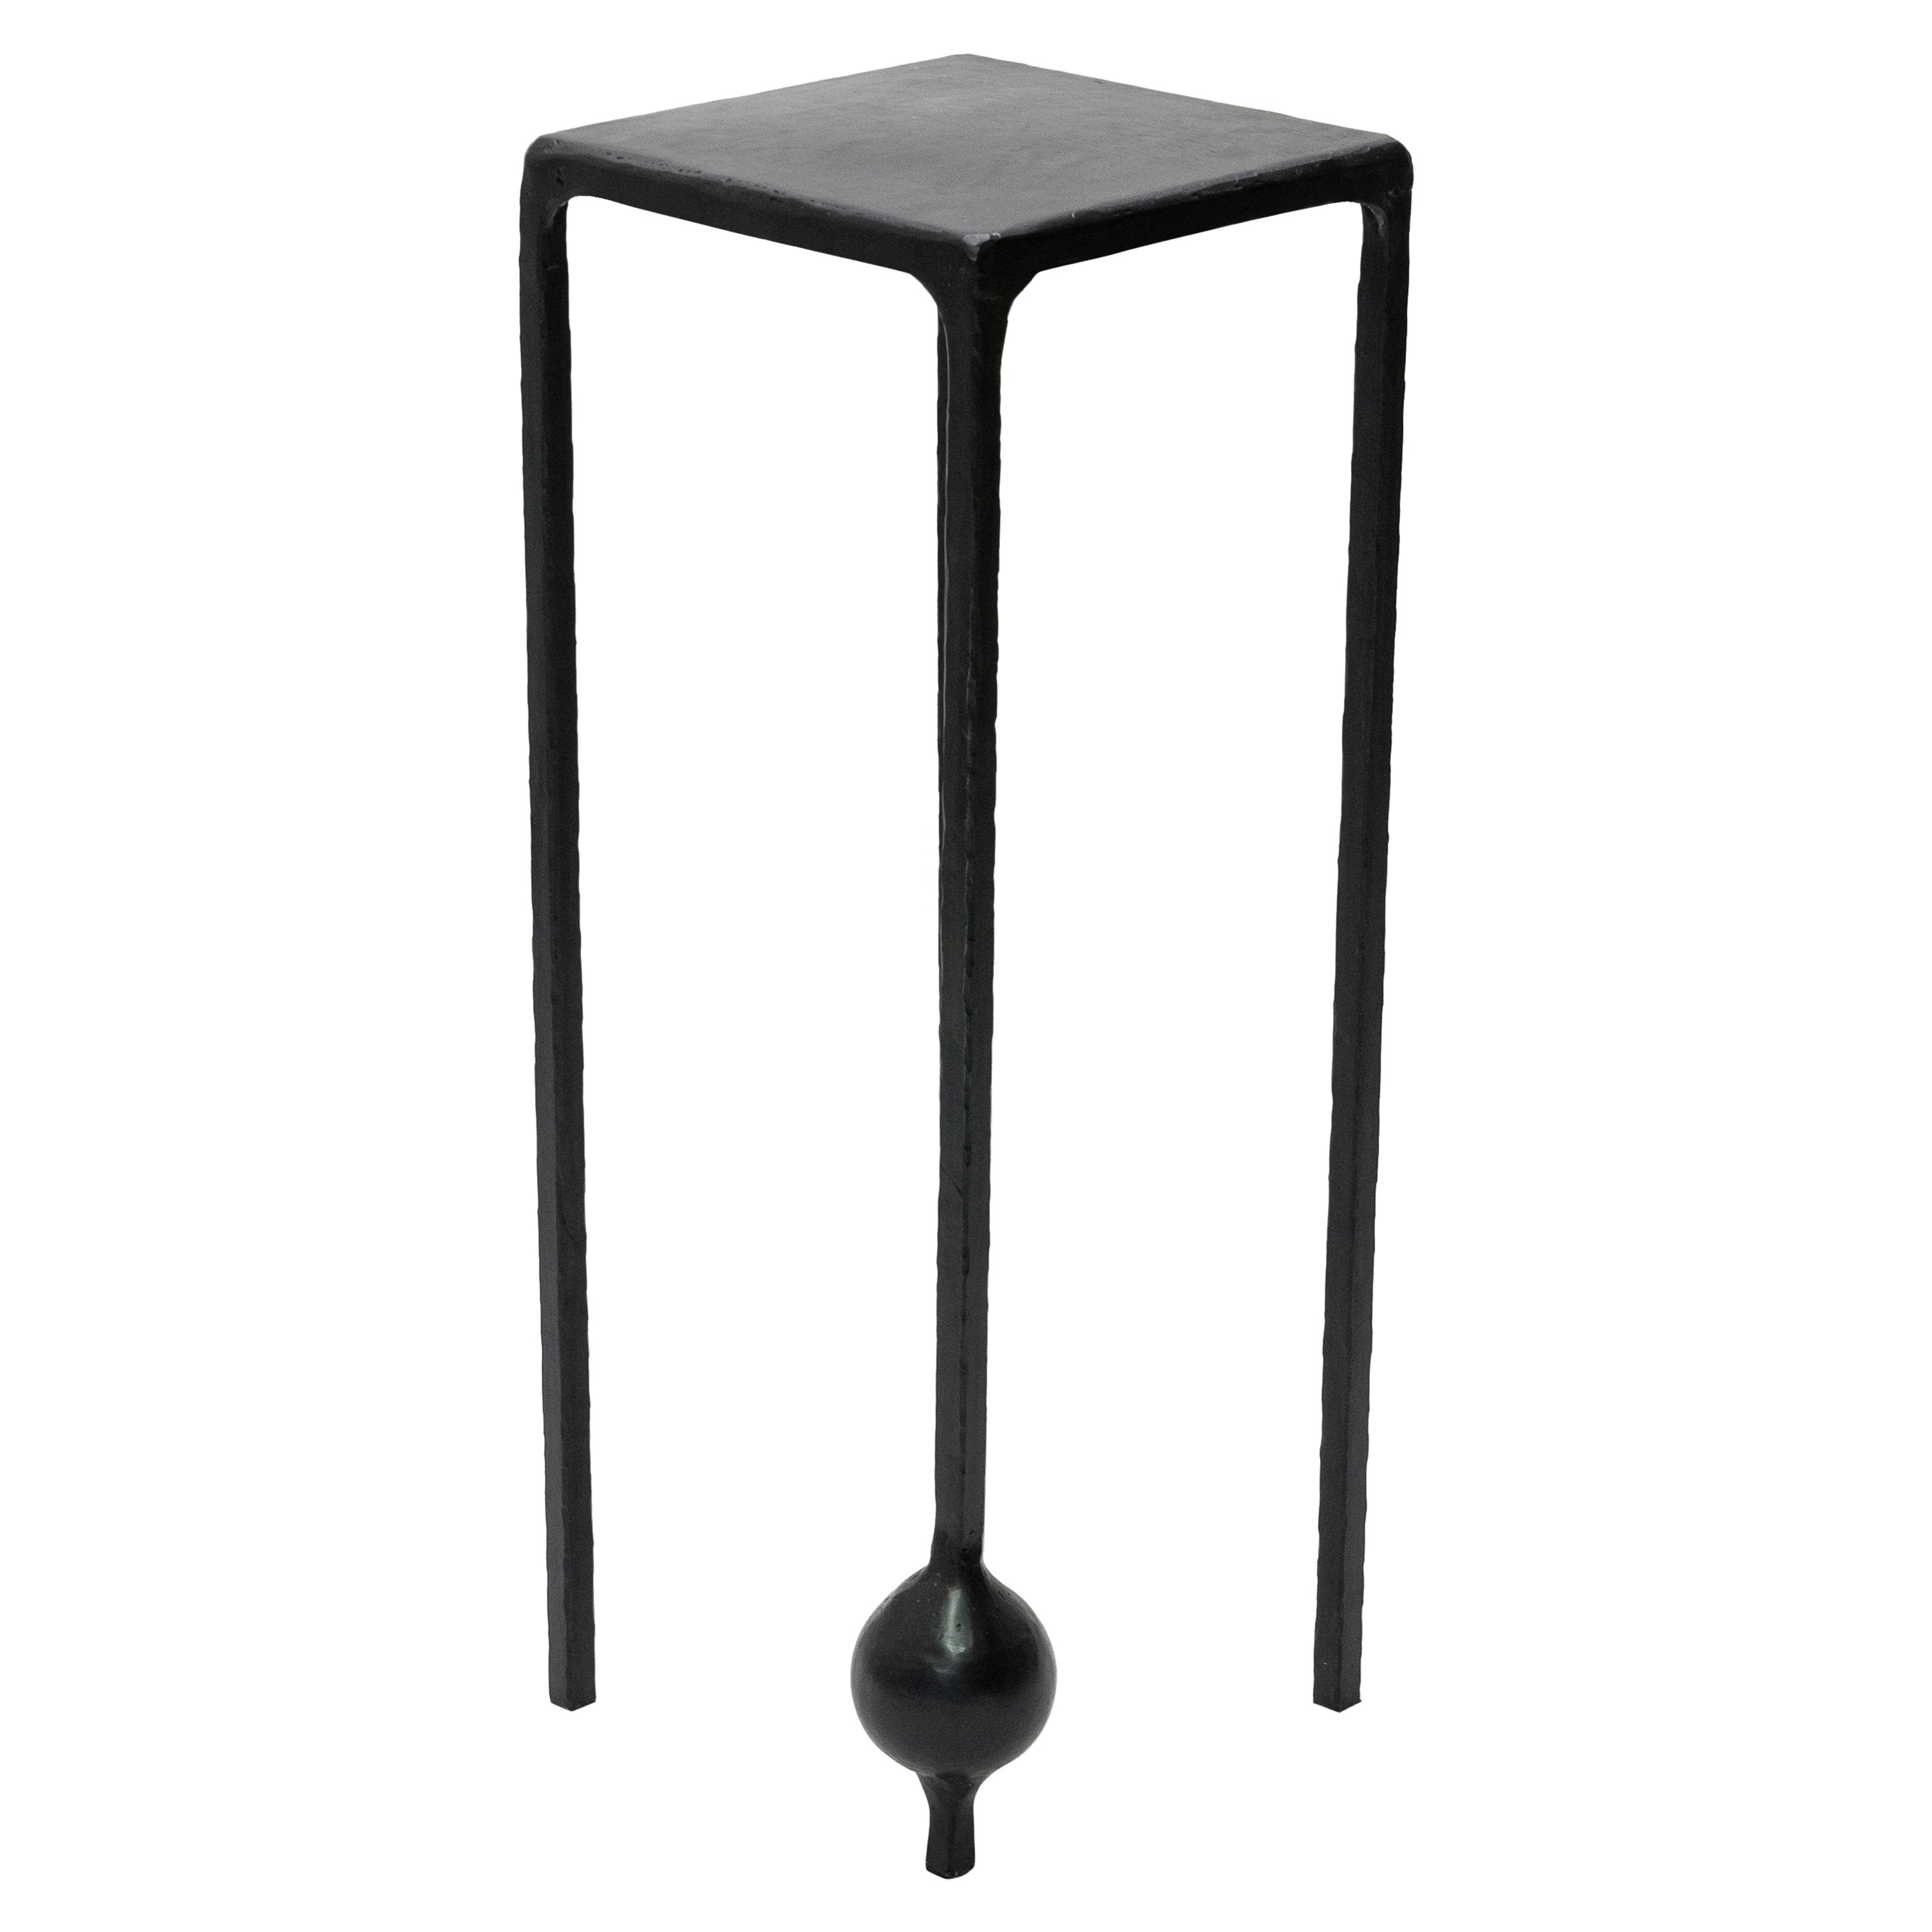 Pedestal Table Modern Dynamic Geometric Handcrafted Blackened and Waxed Steel